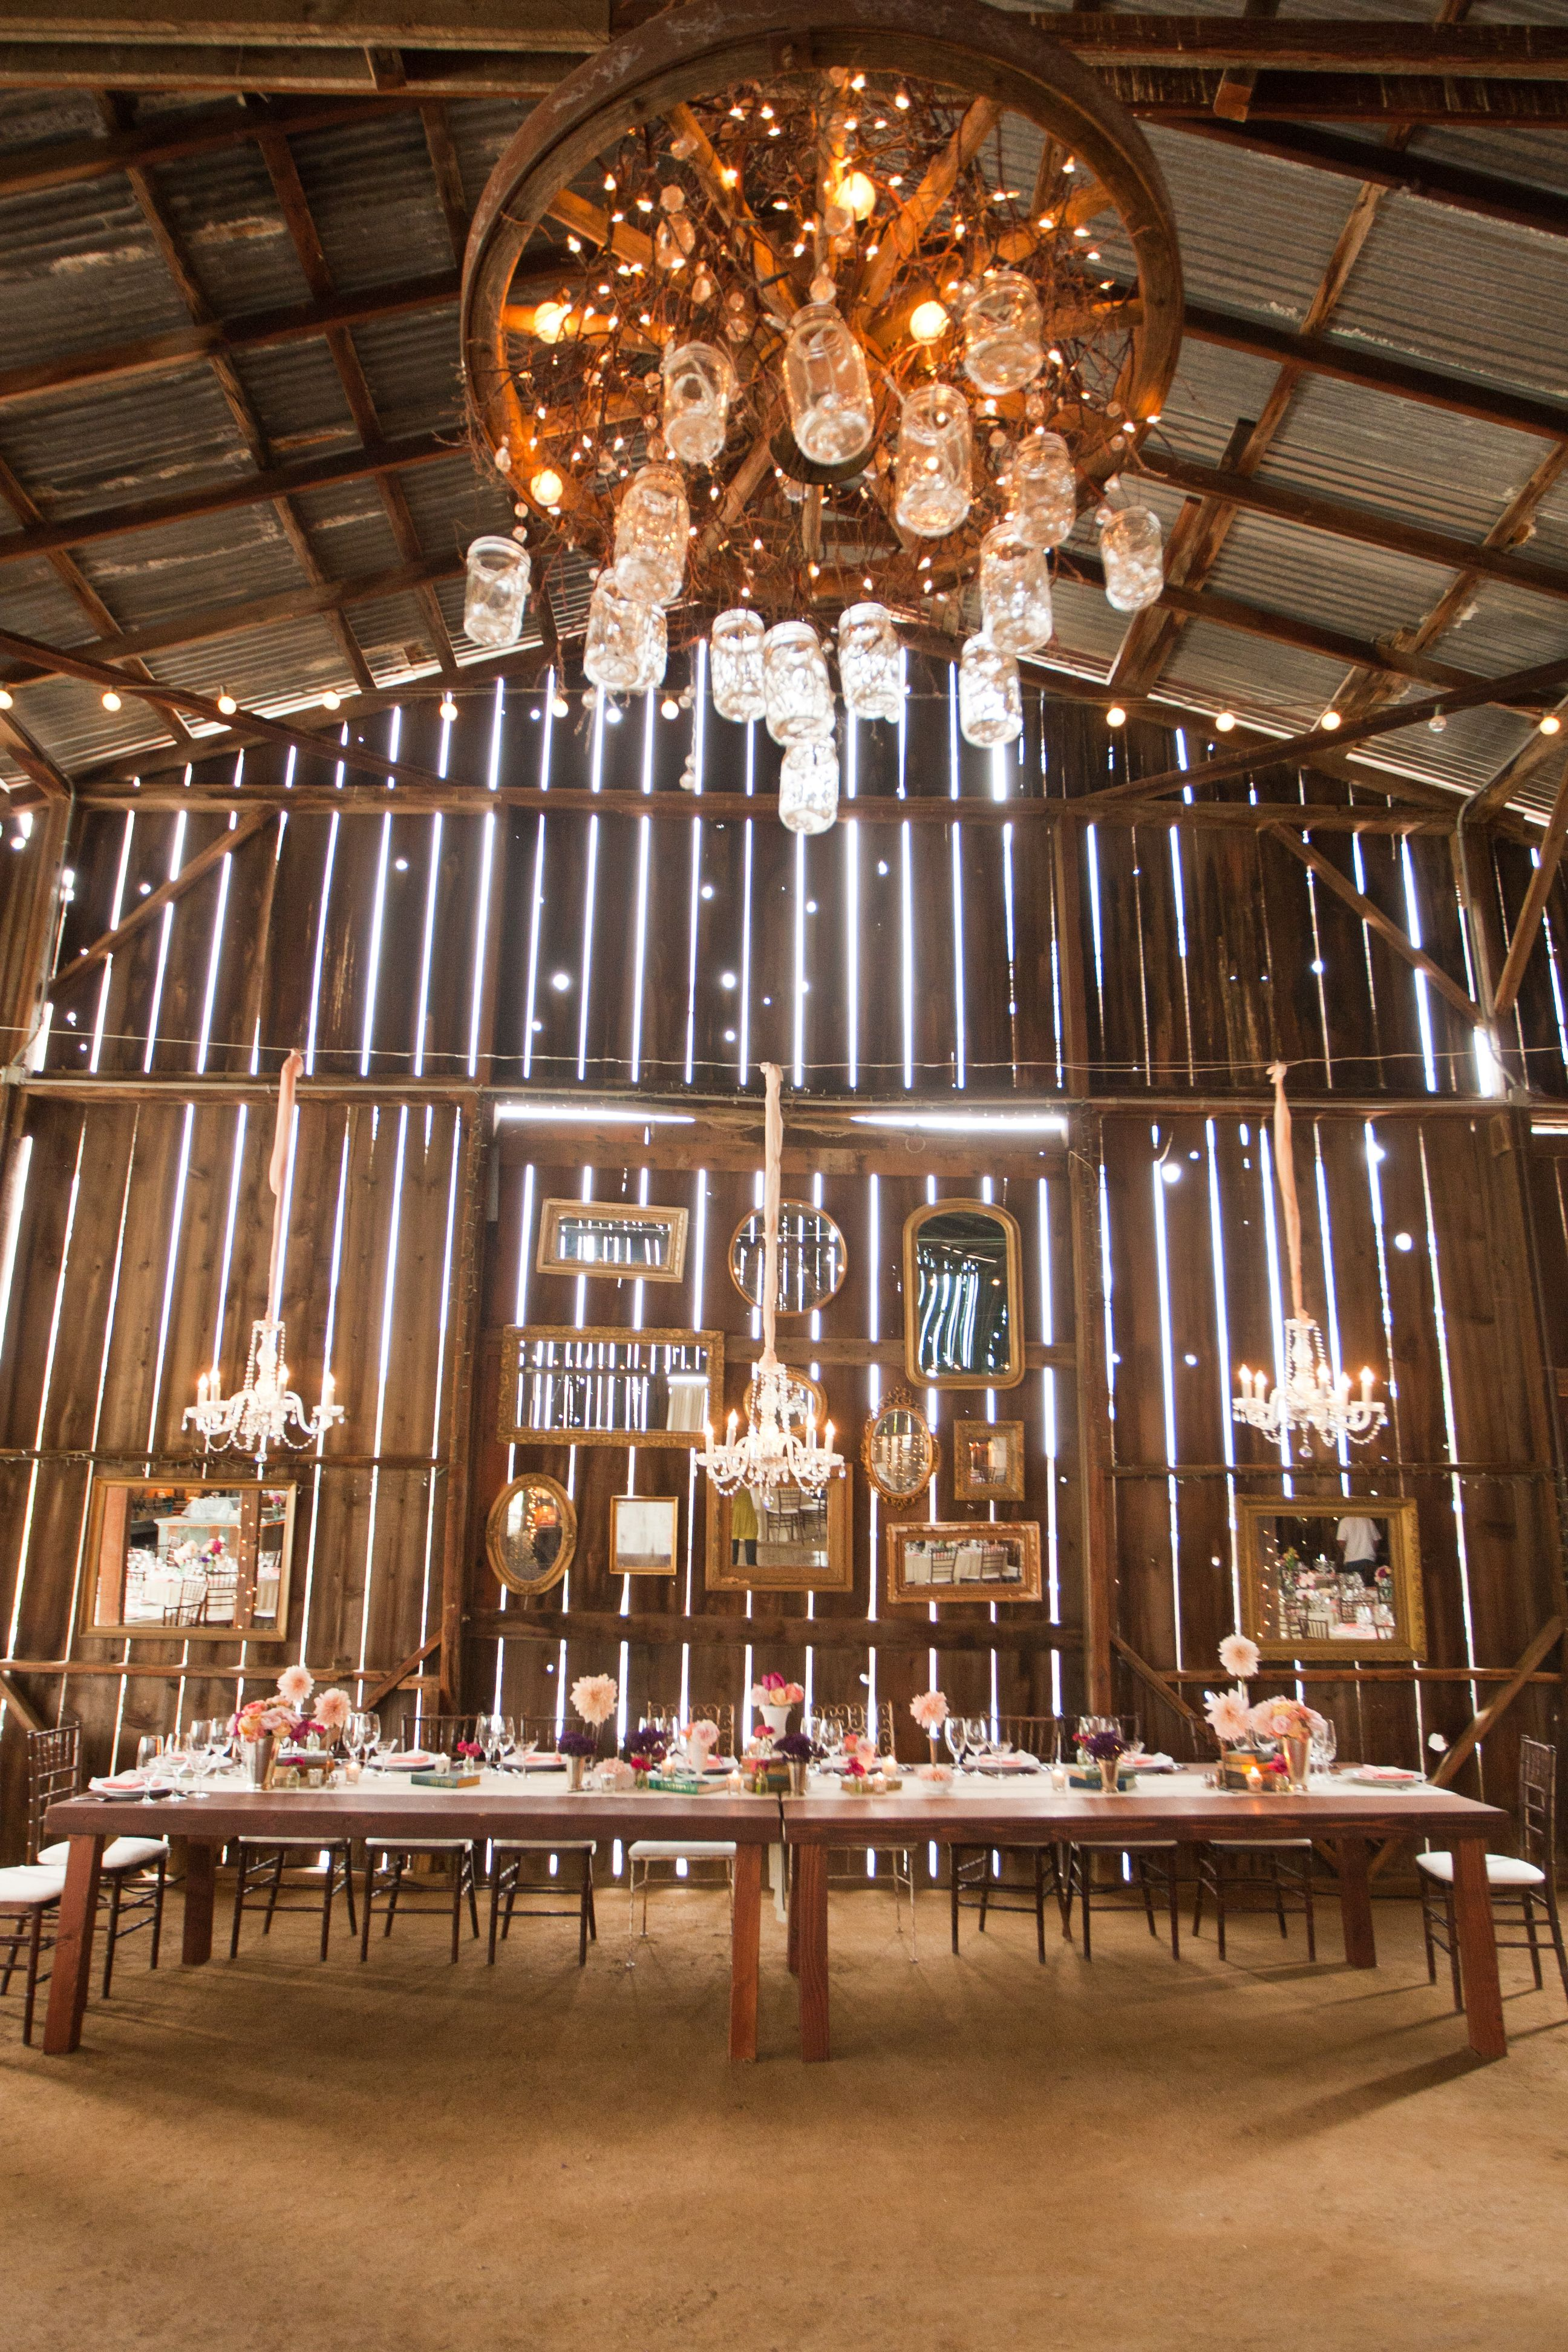 This is where my friend is getting married! @Erin Bailey  Dana Powers Barn